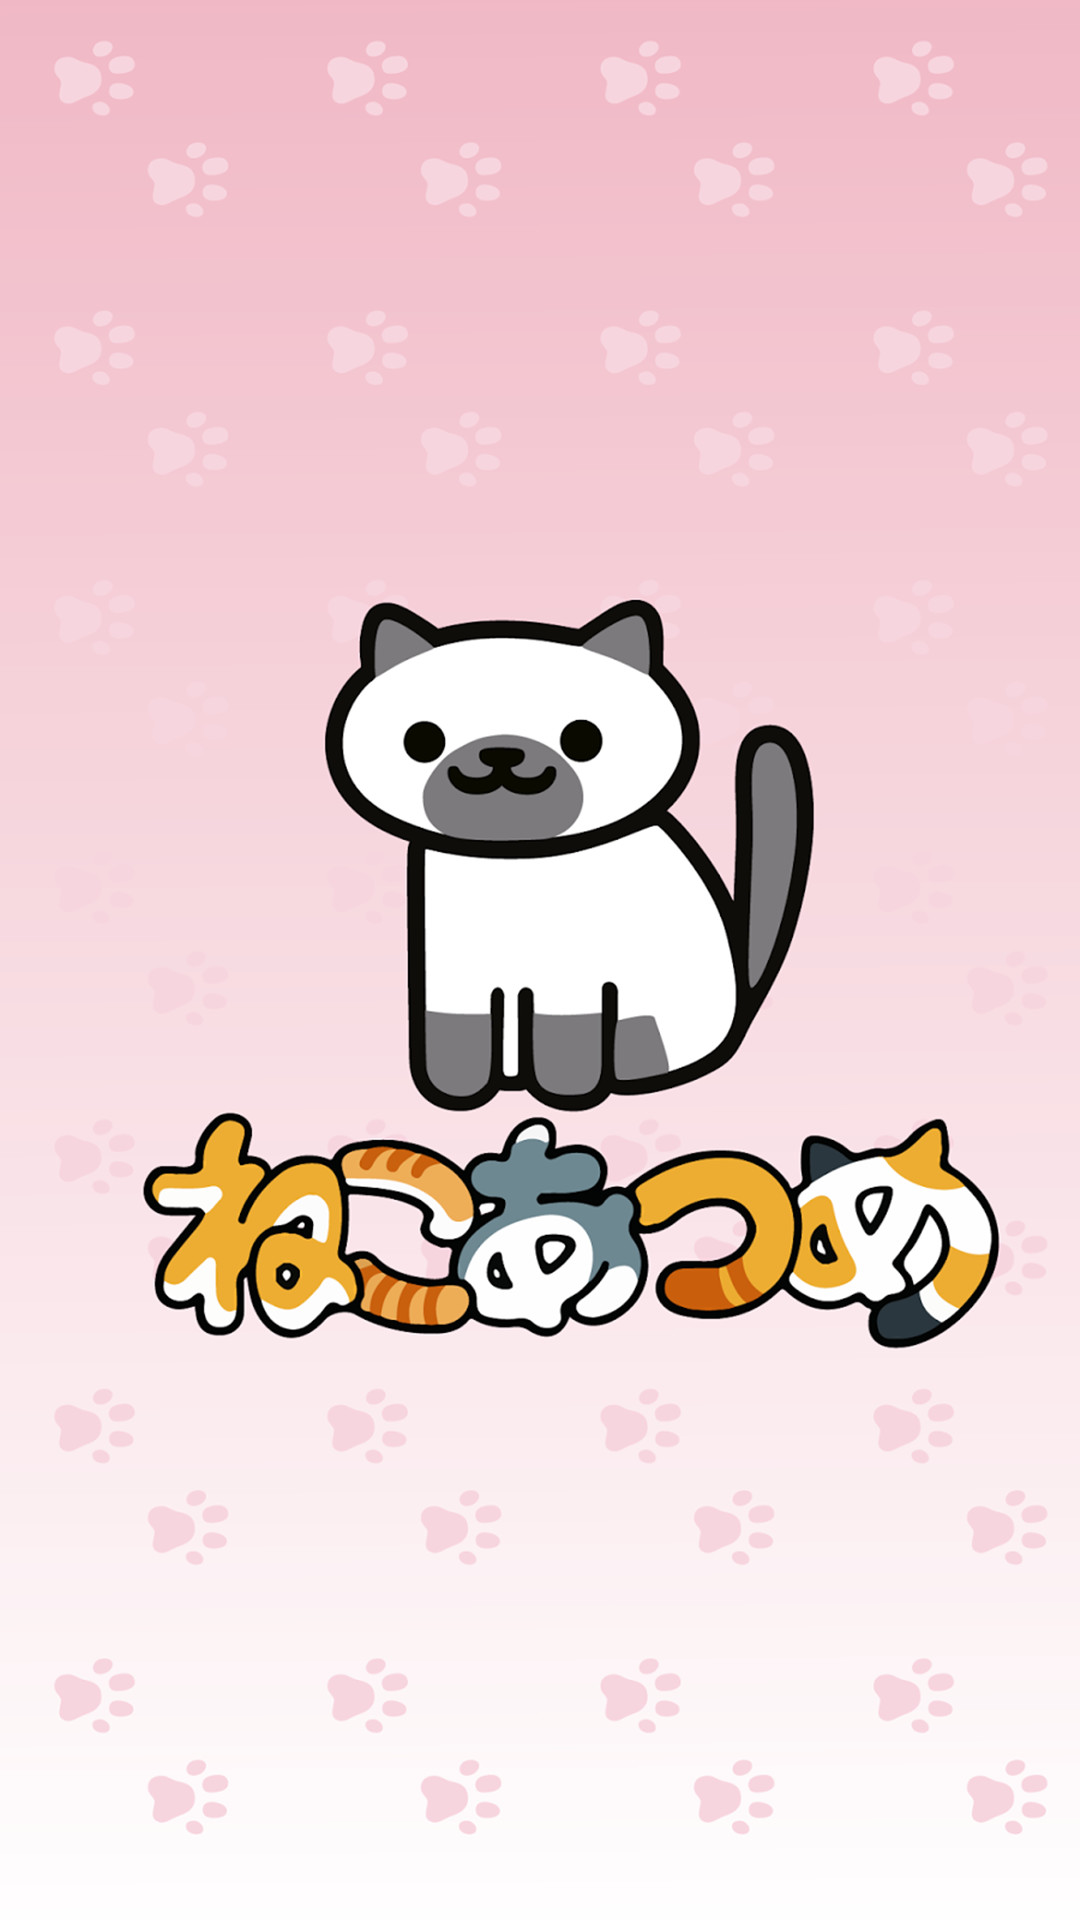 Tap to see more Neko Atsume the cat wallpapers, backgrounds,